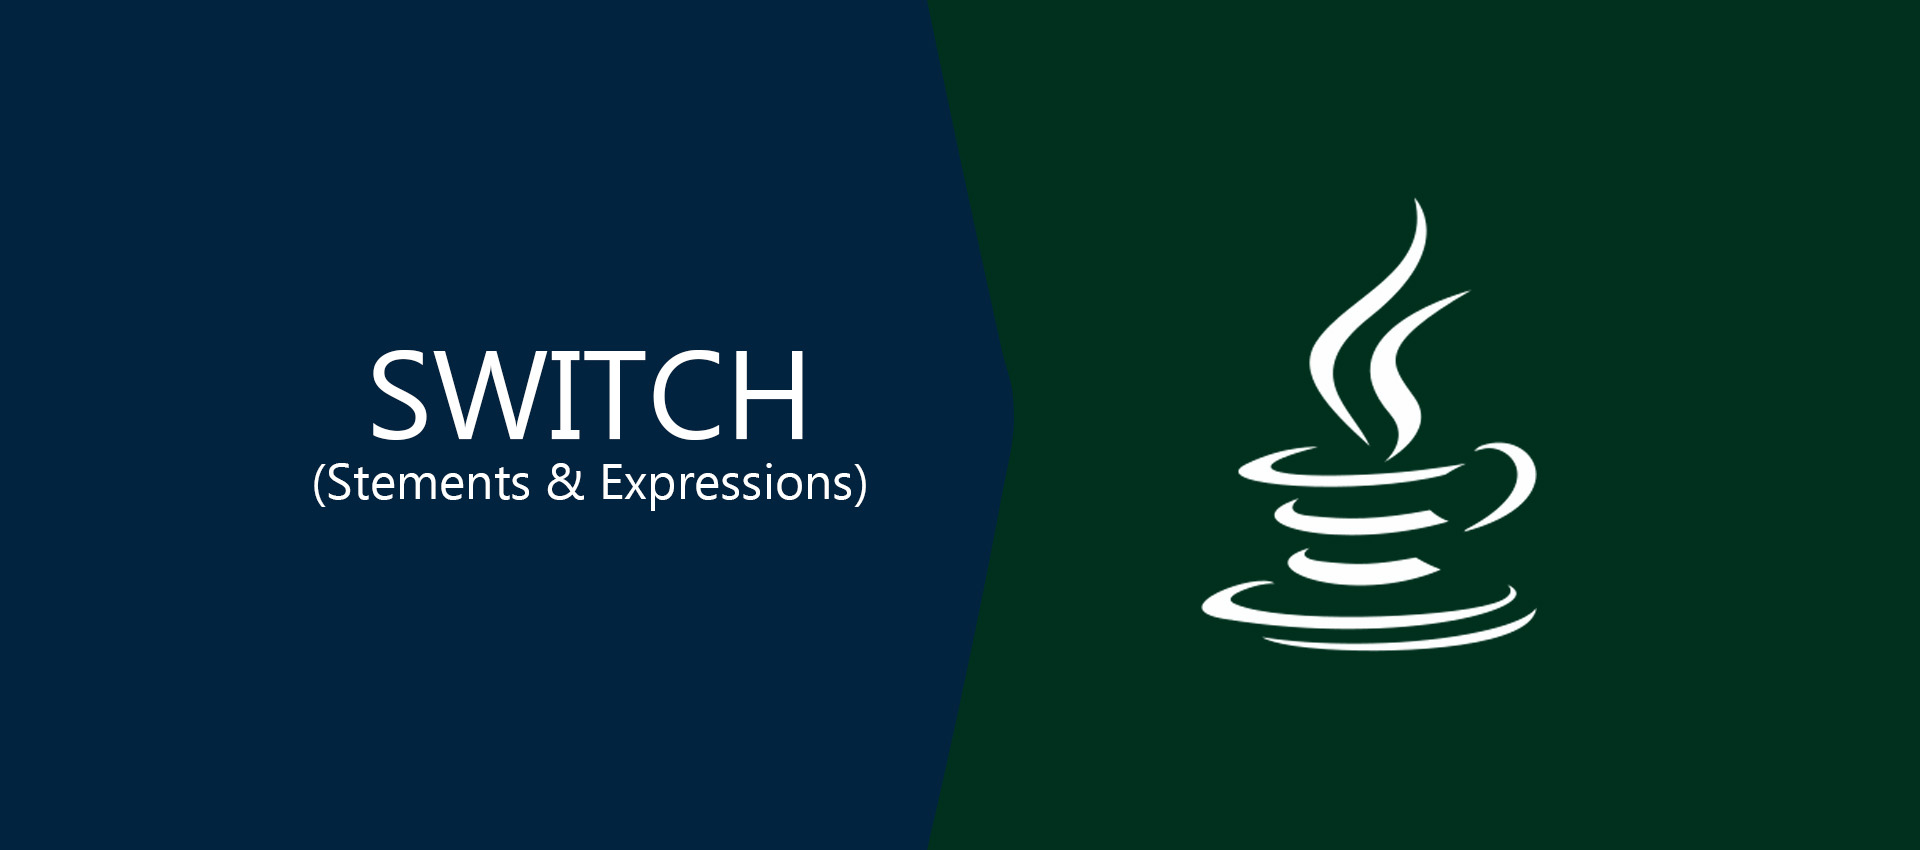 How To Use Switch Statement and Expressions In Java